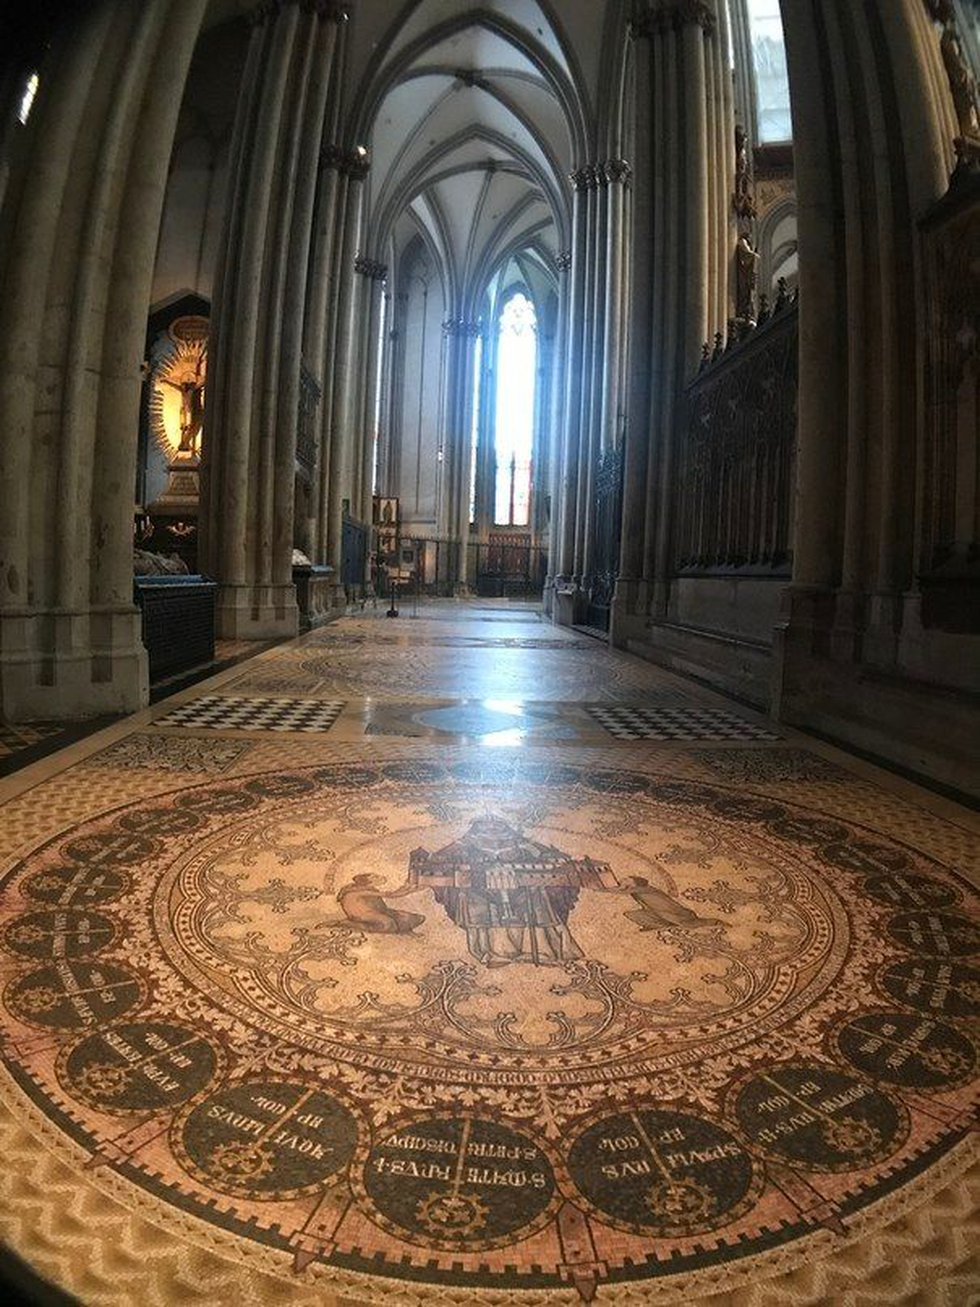 The cathedral is home to the shrine of the Magi, relics of saints, and priceless works of art....